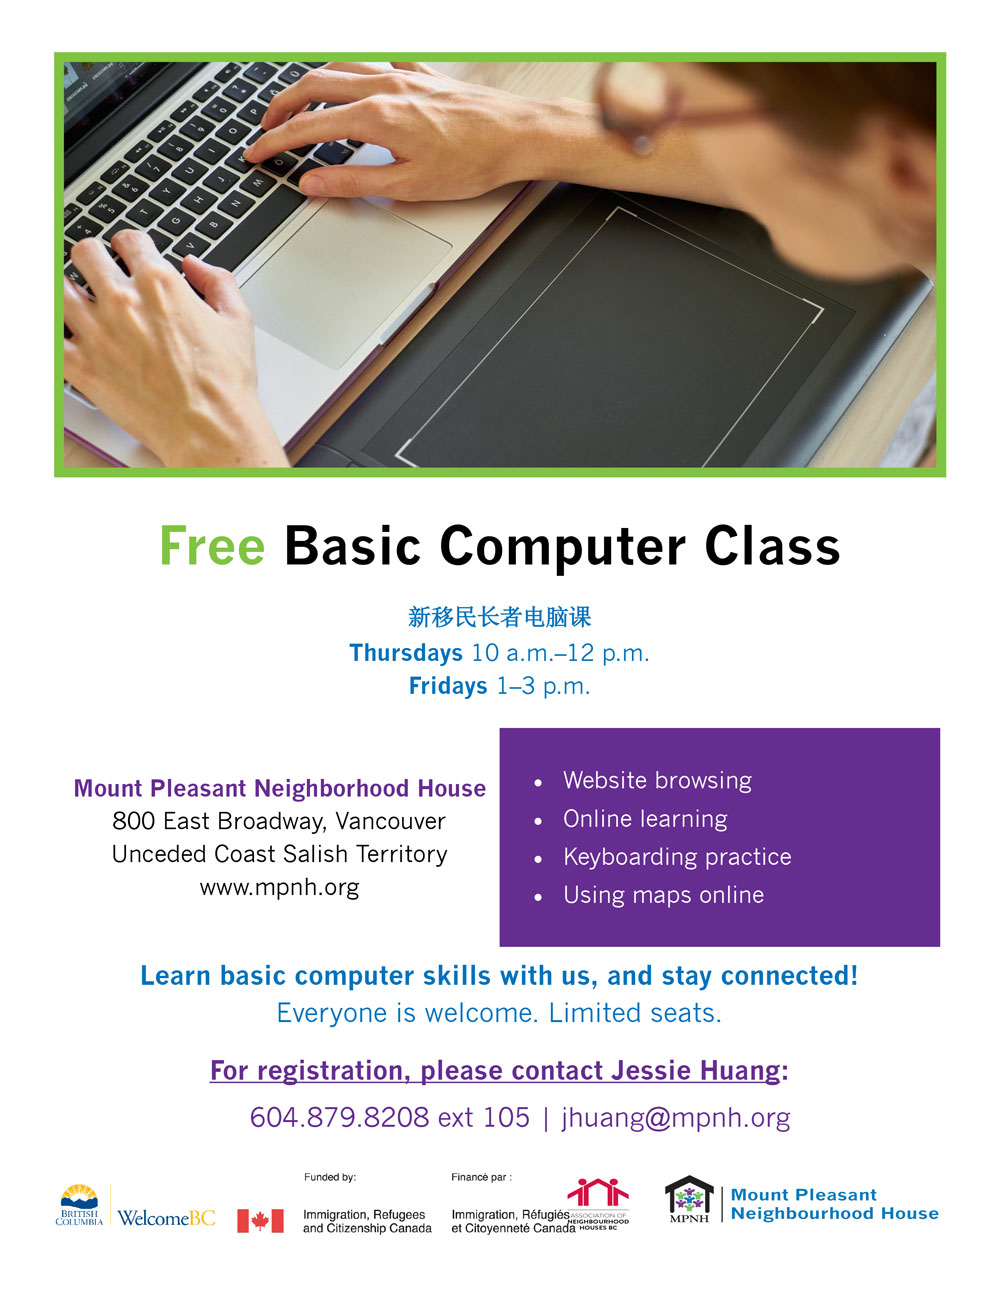 An image of the poster with a photo of a person wearing glasses, and typing on a laptop.